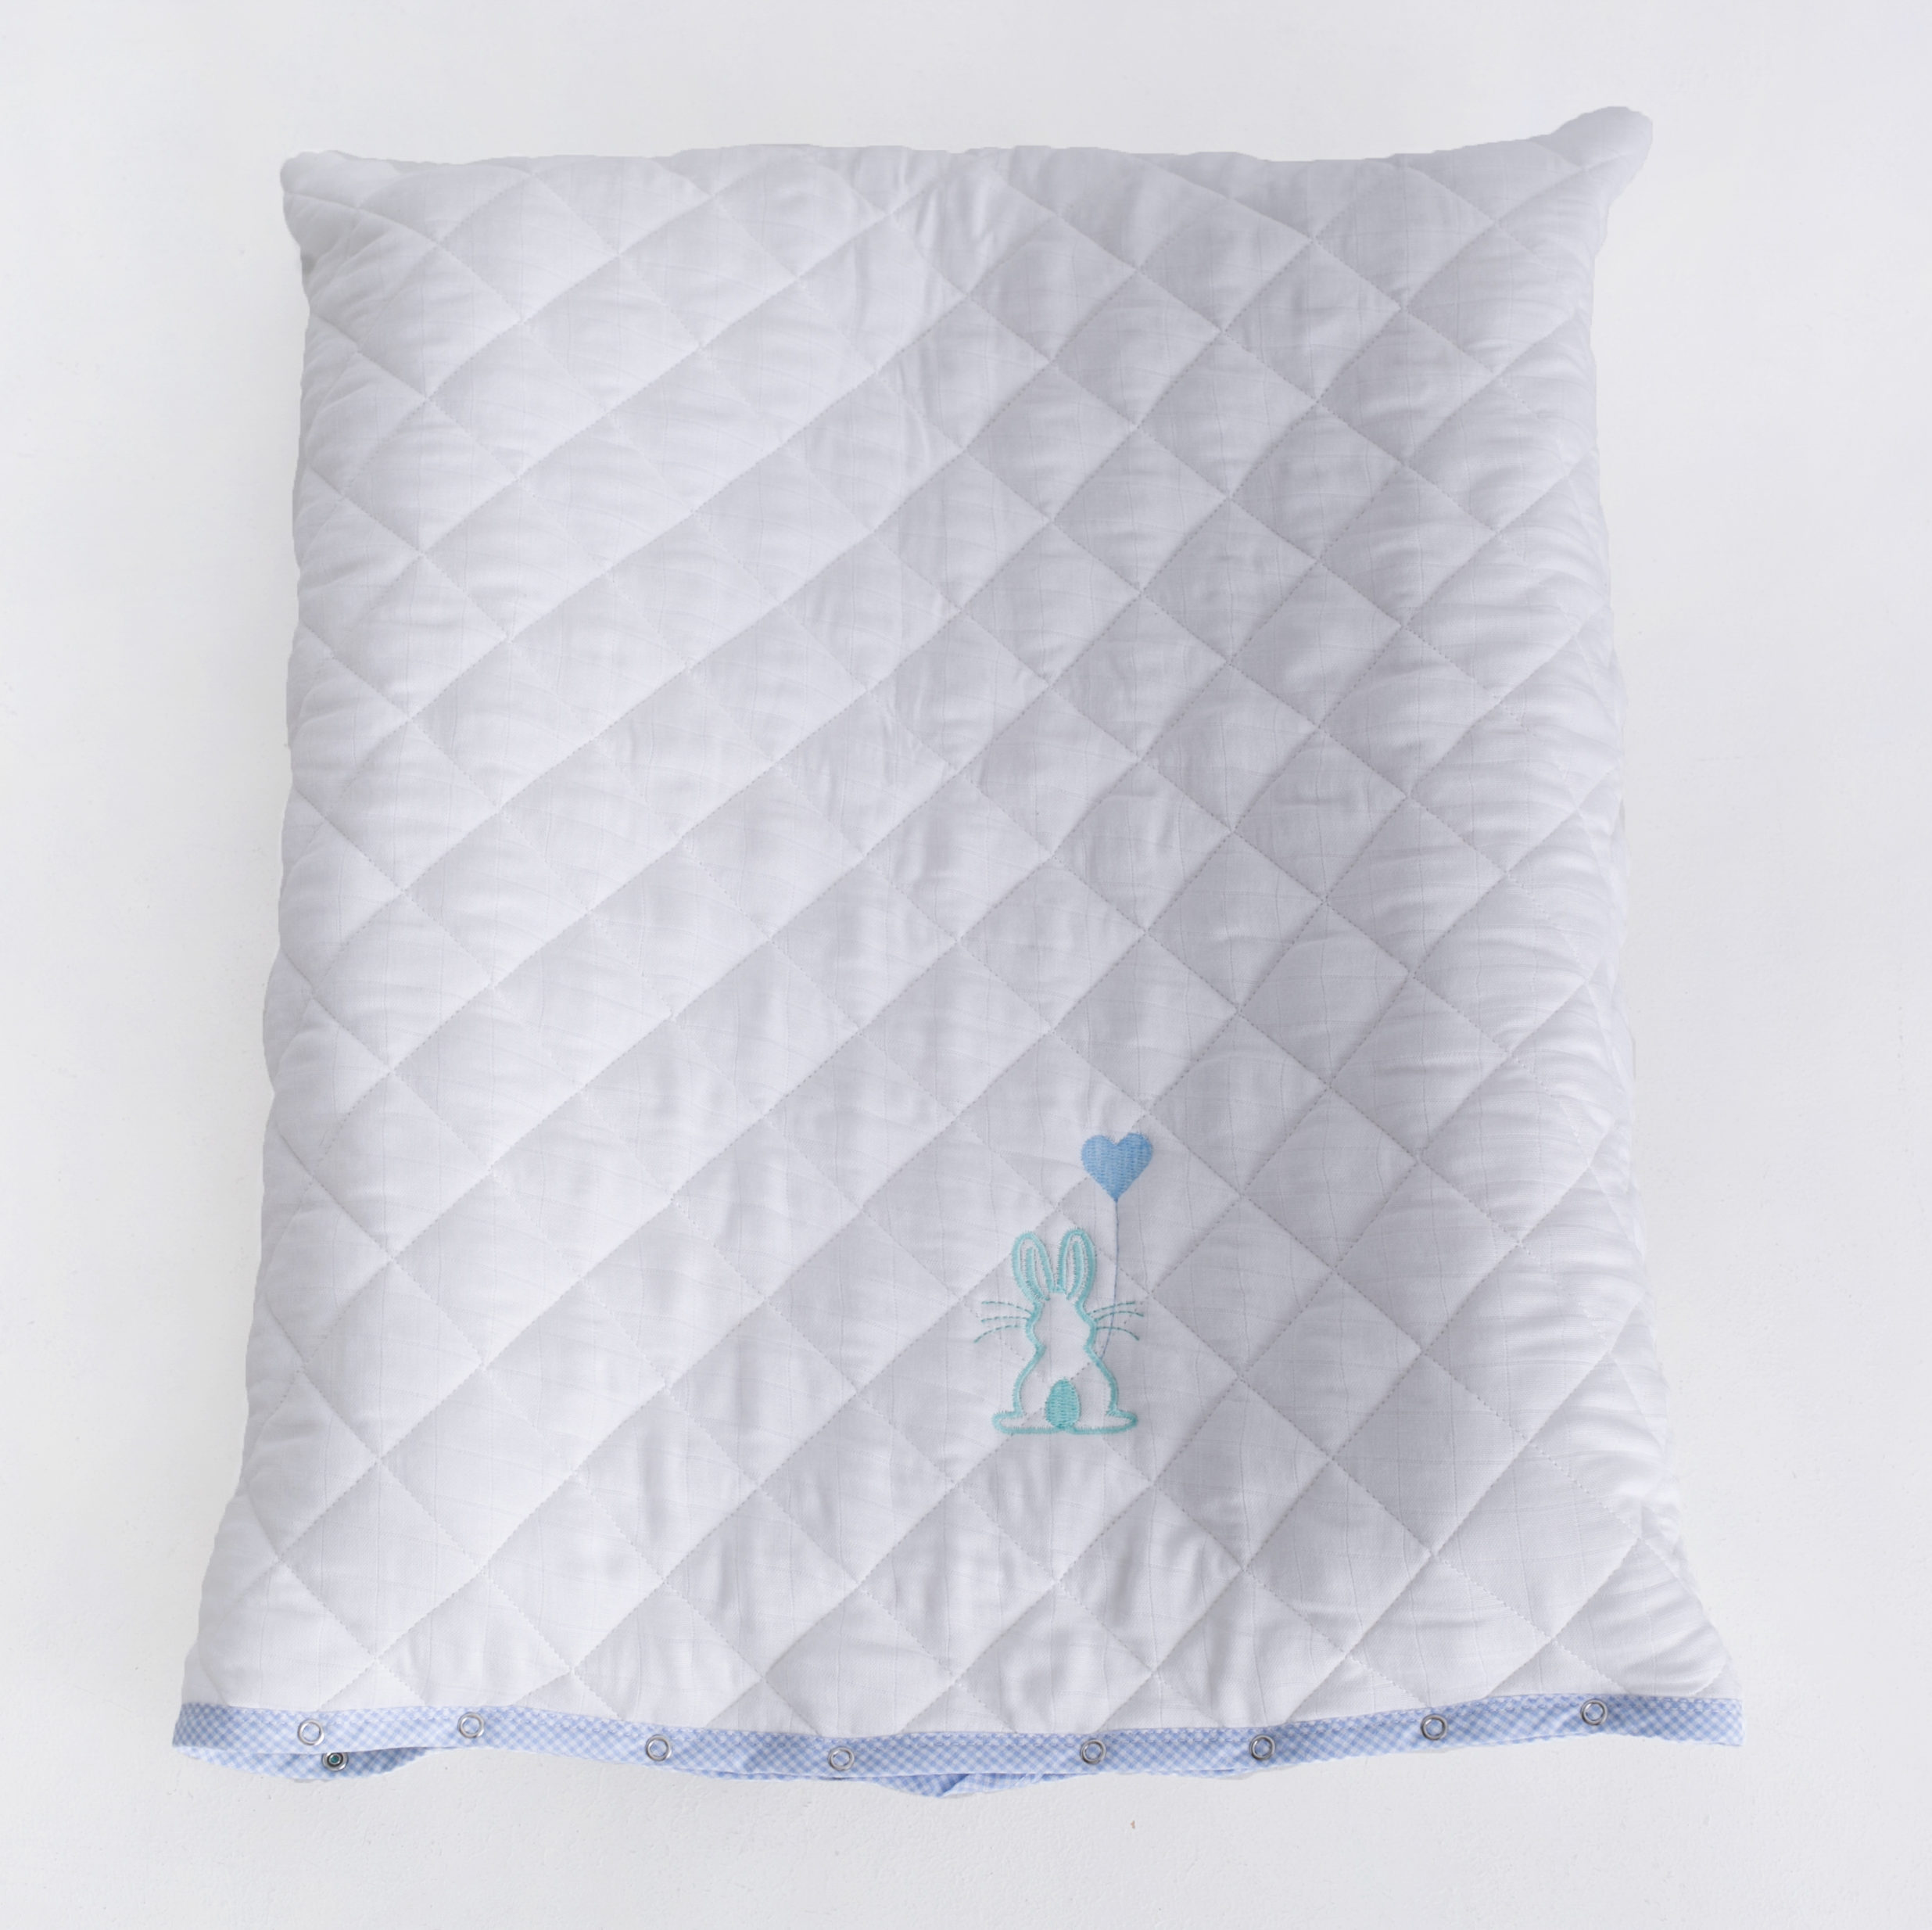 top ideas post indi ts bed type pillow for heart sleeper unique reviews pillows best related of bamboo decorative lovely every new